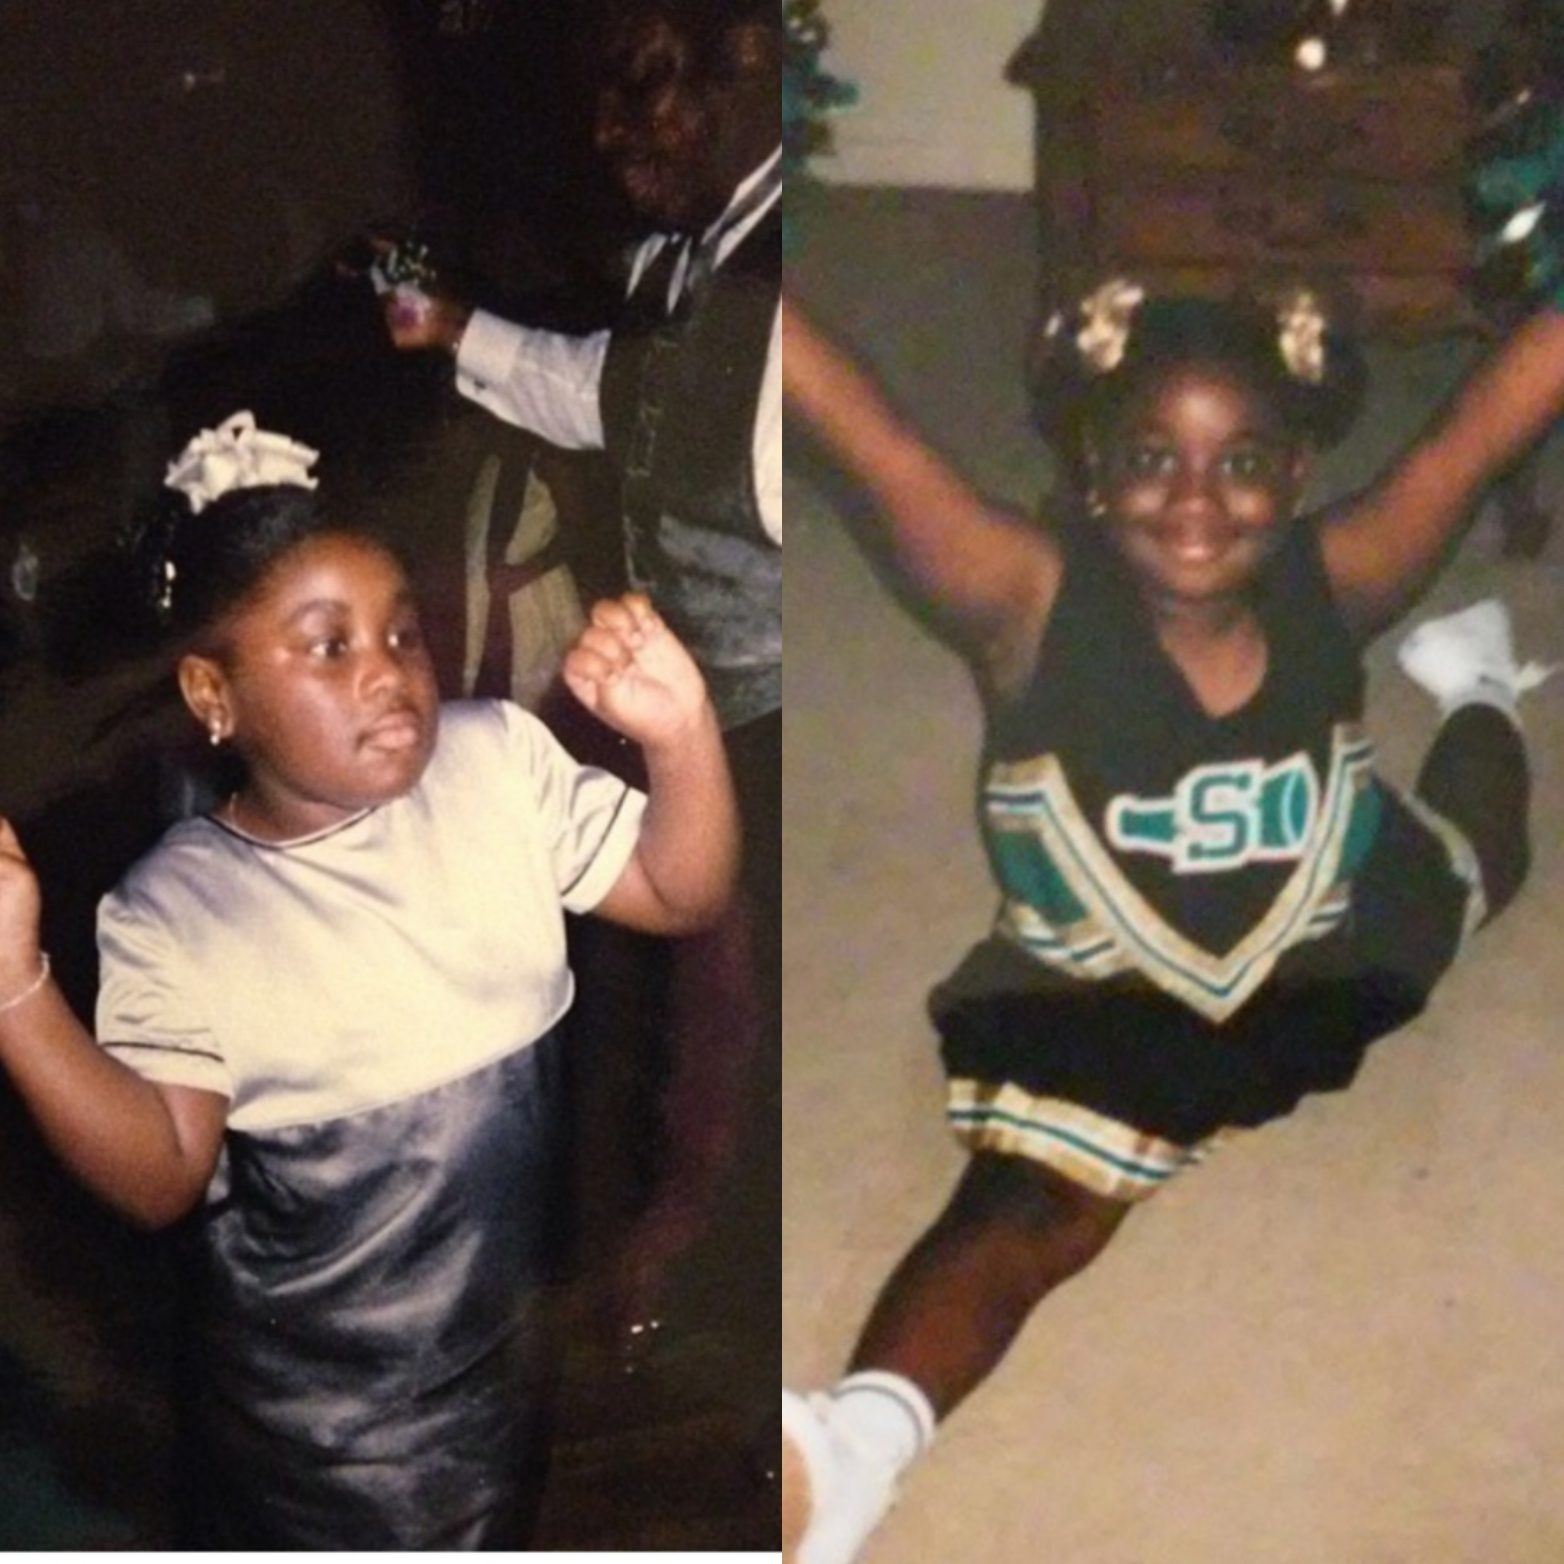 I was so adorable and chubby. I could do a split better then than I can now lol